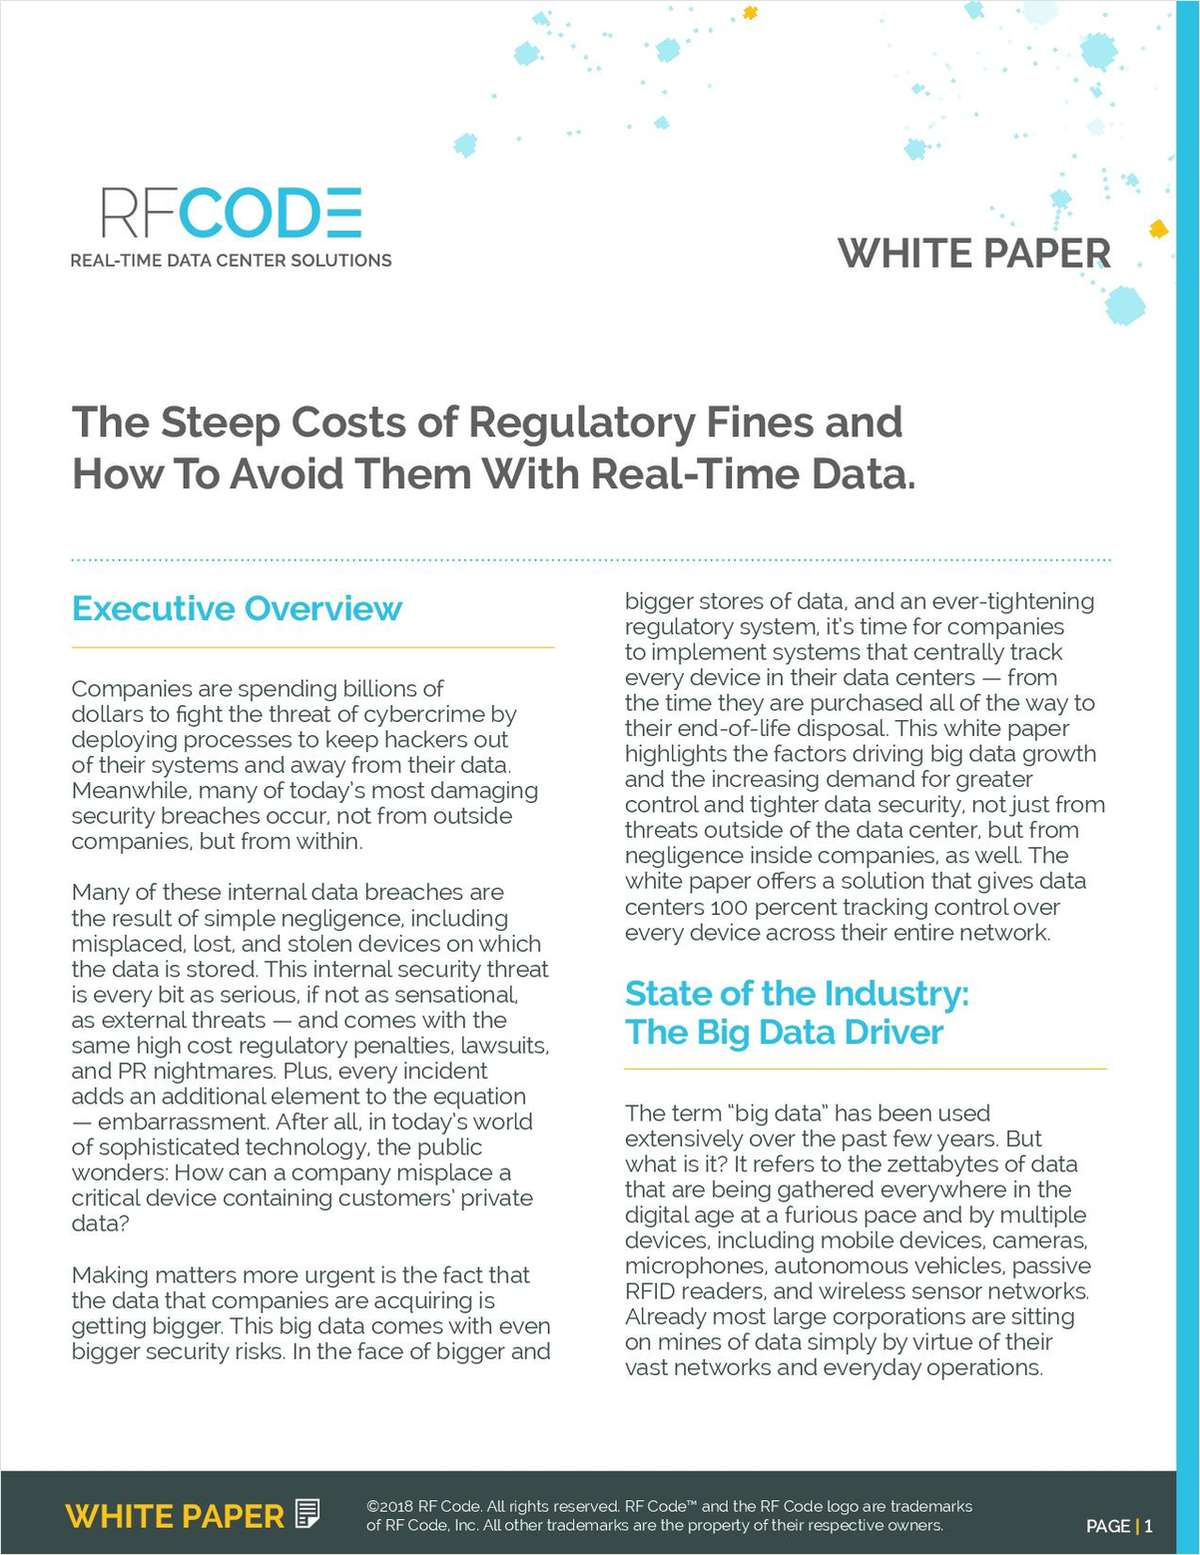 The Steep Costs of Regulatory Fines and How to Avoid Them With Real-Time Data